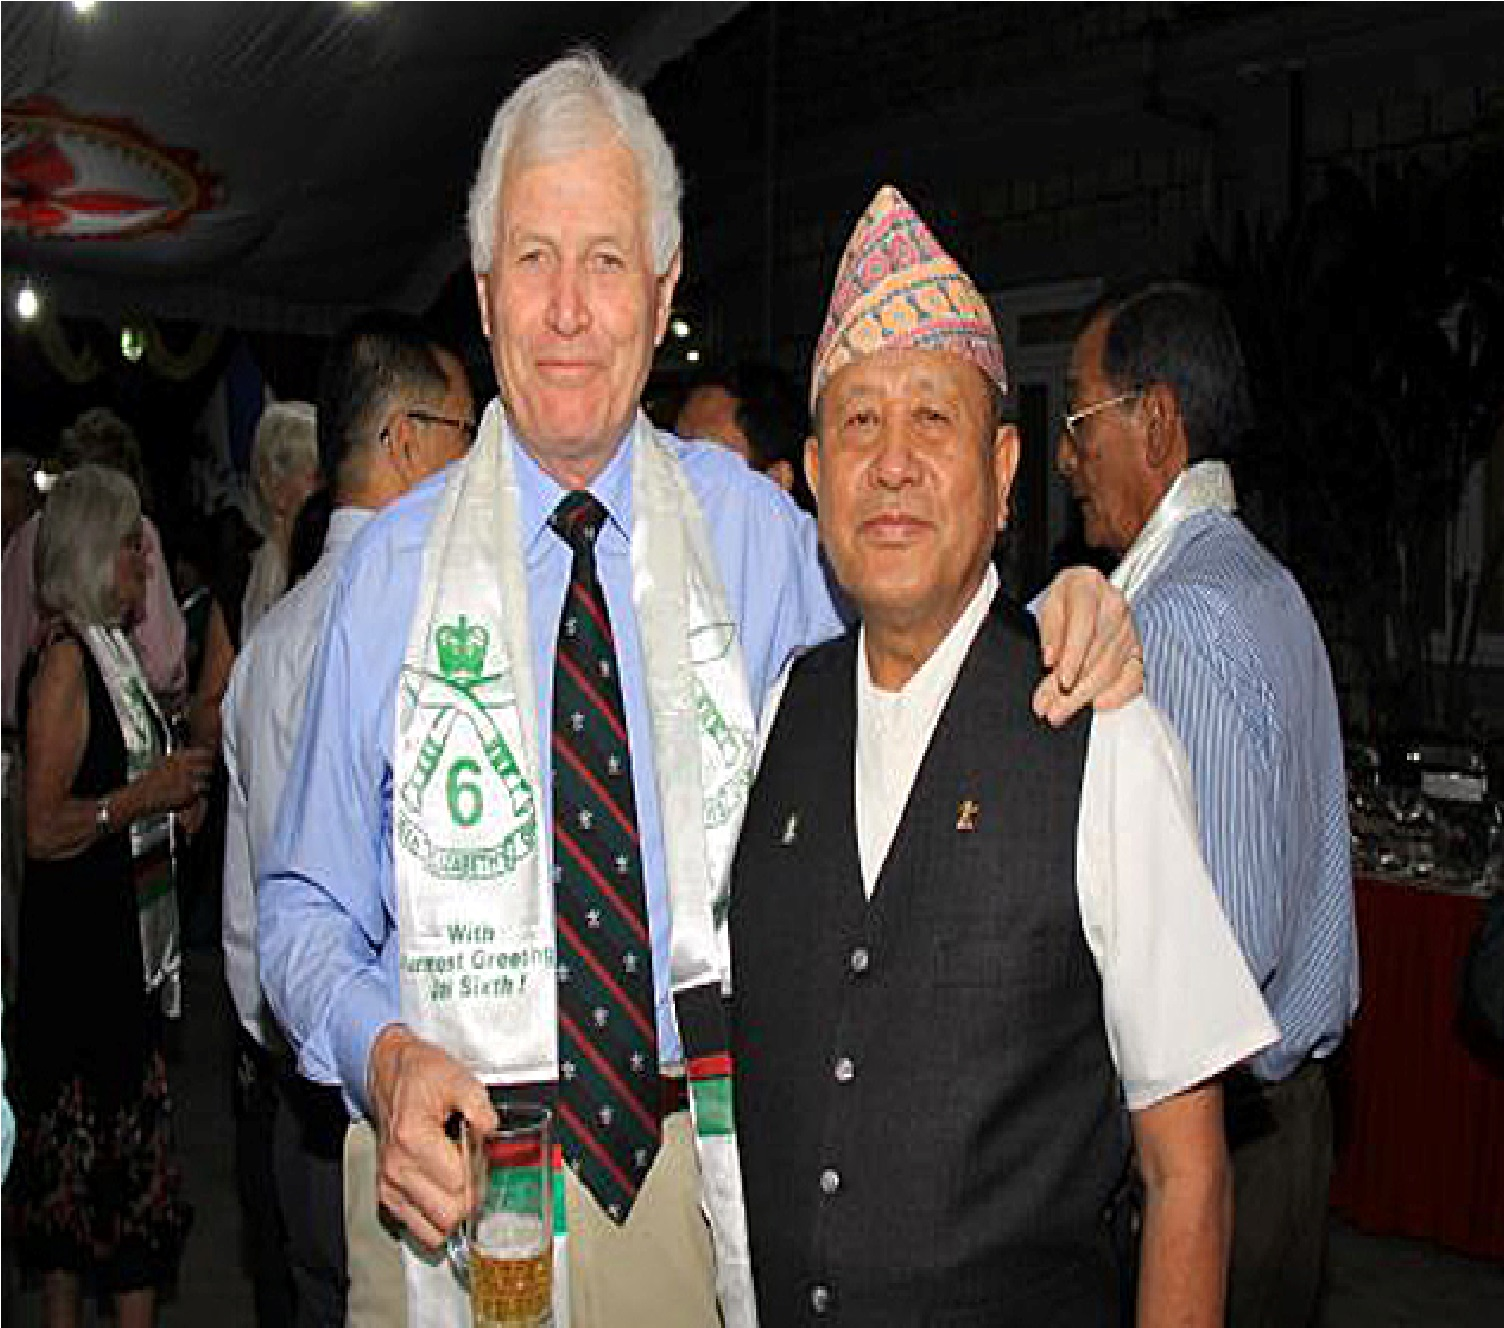 Lt Col Paul Pettigrew (Chairman 6GR) and Maj Gyan Bahadur Gurung (Chairman Nepal Branch) at Gurkha Haven Hotel